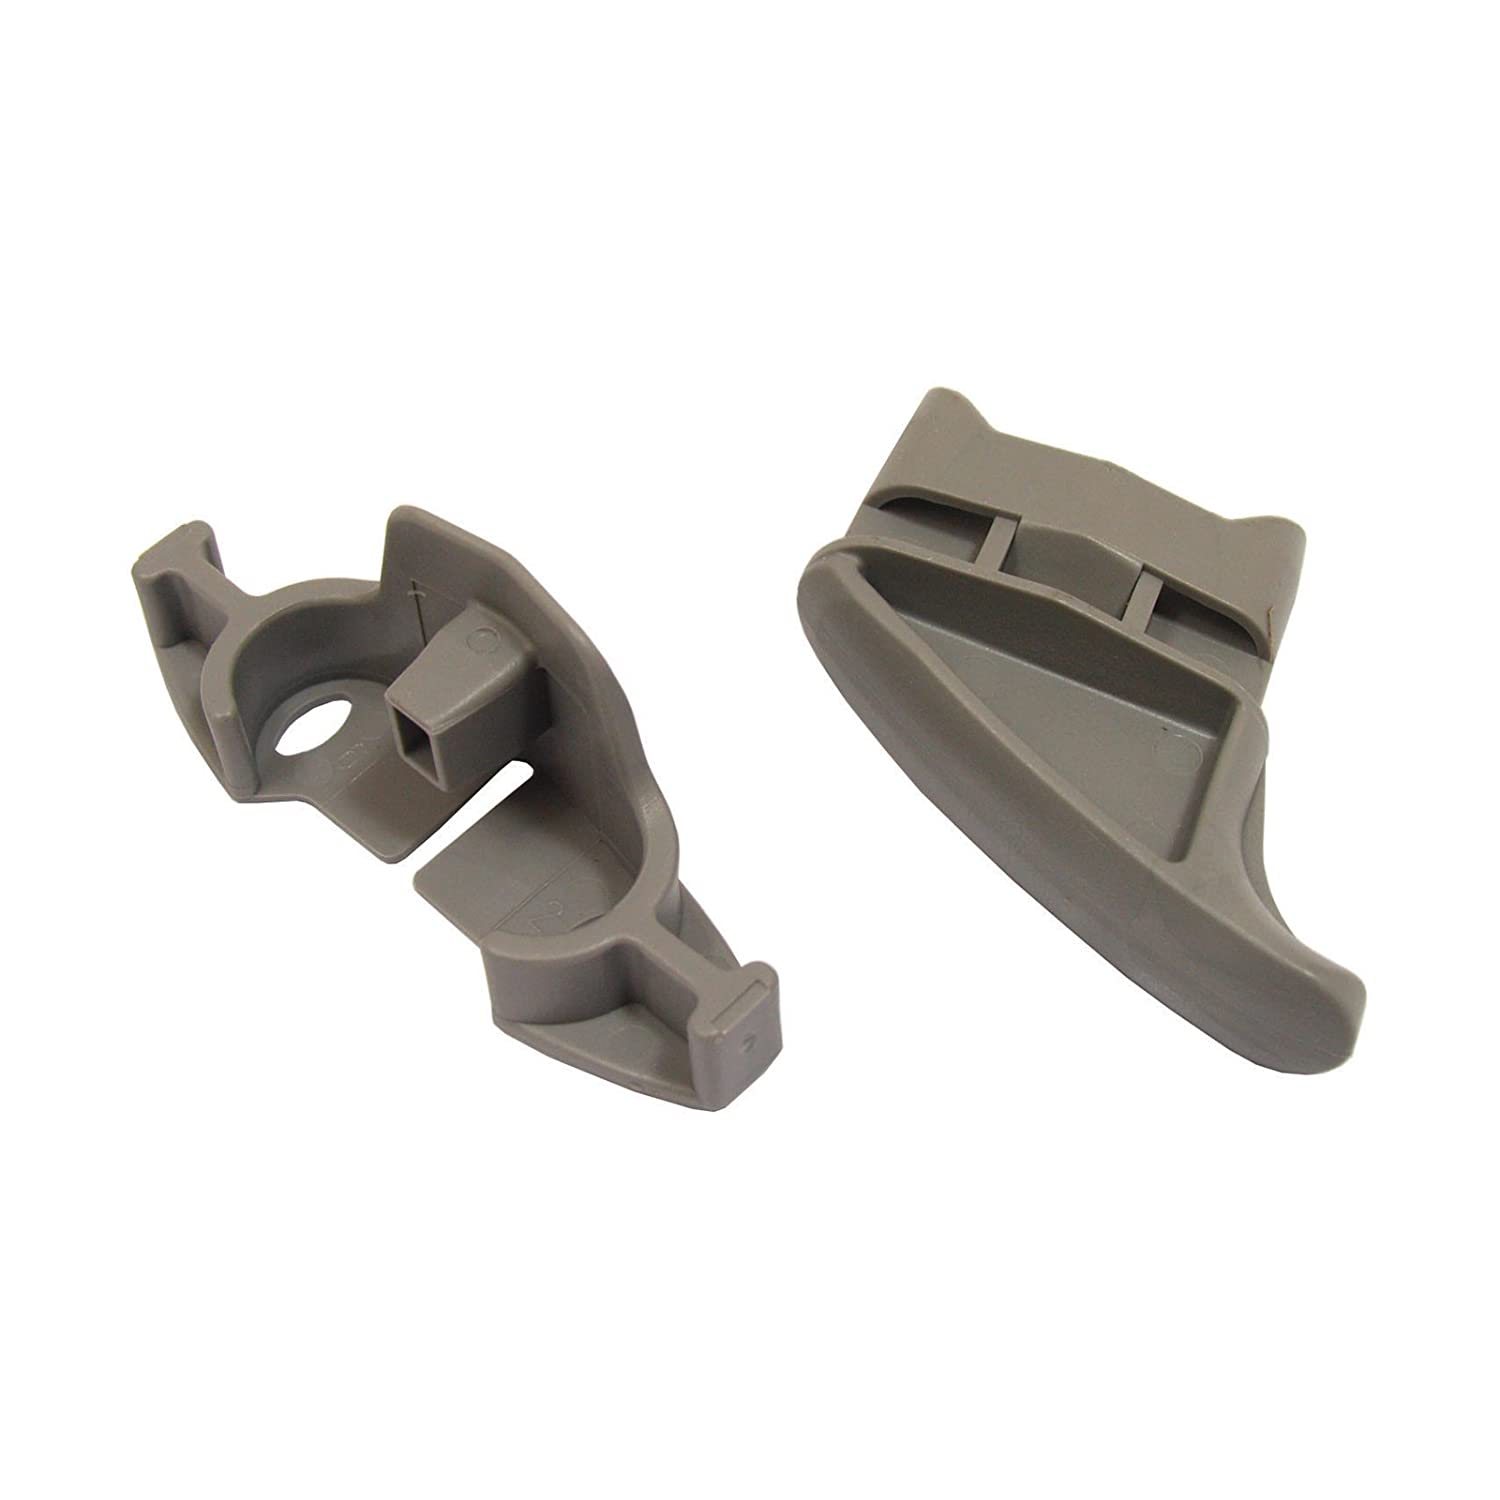 Bosch Dishwasher Rack Clip Holder Bracket